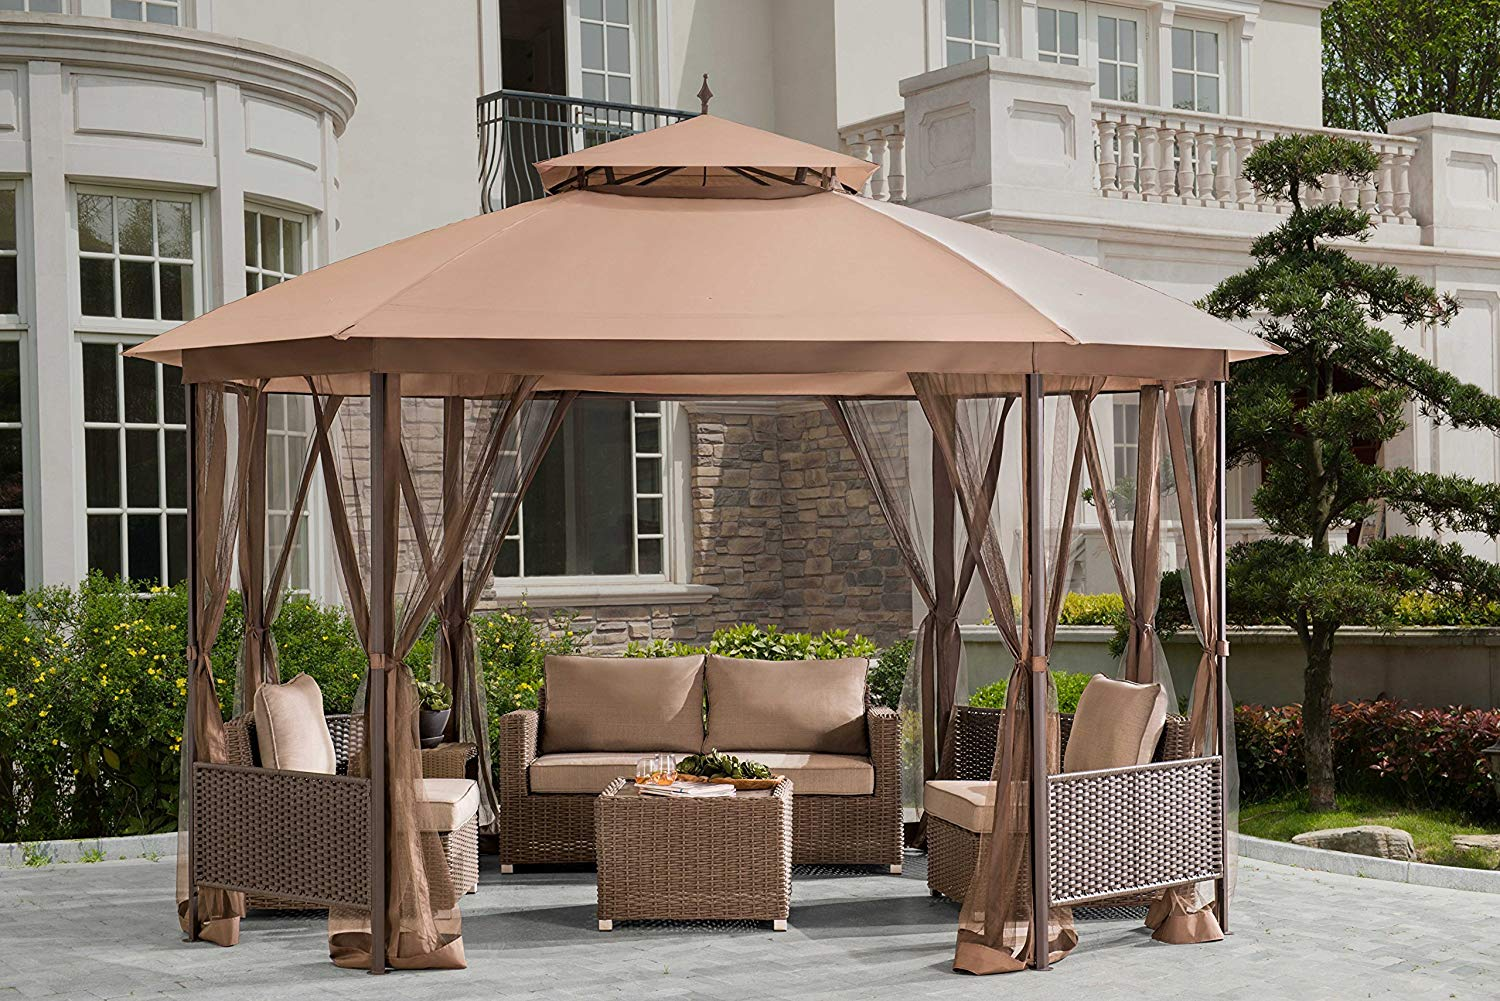 Sunjoy Octagonal Patio Softtop Gazebo with Netting, Wicker Pannels, Brown